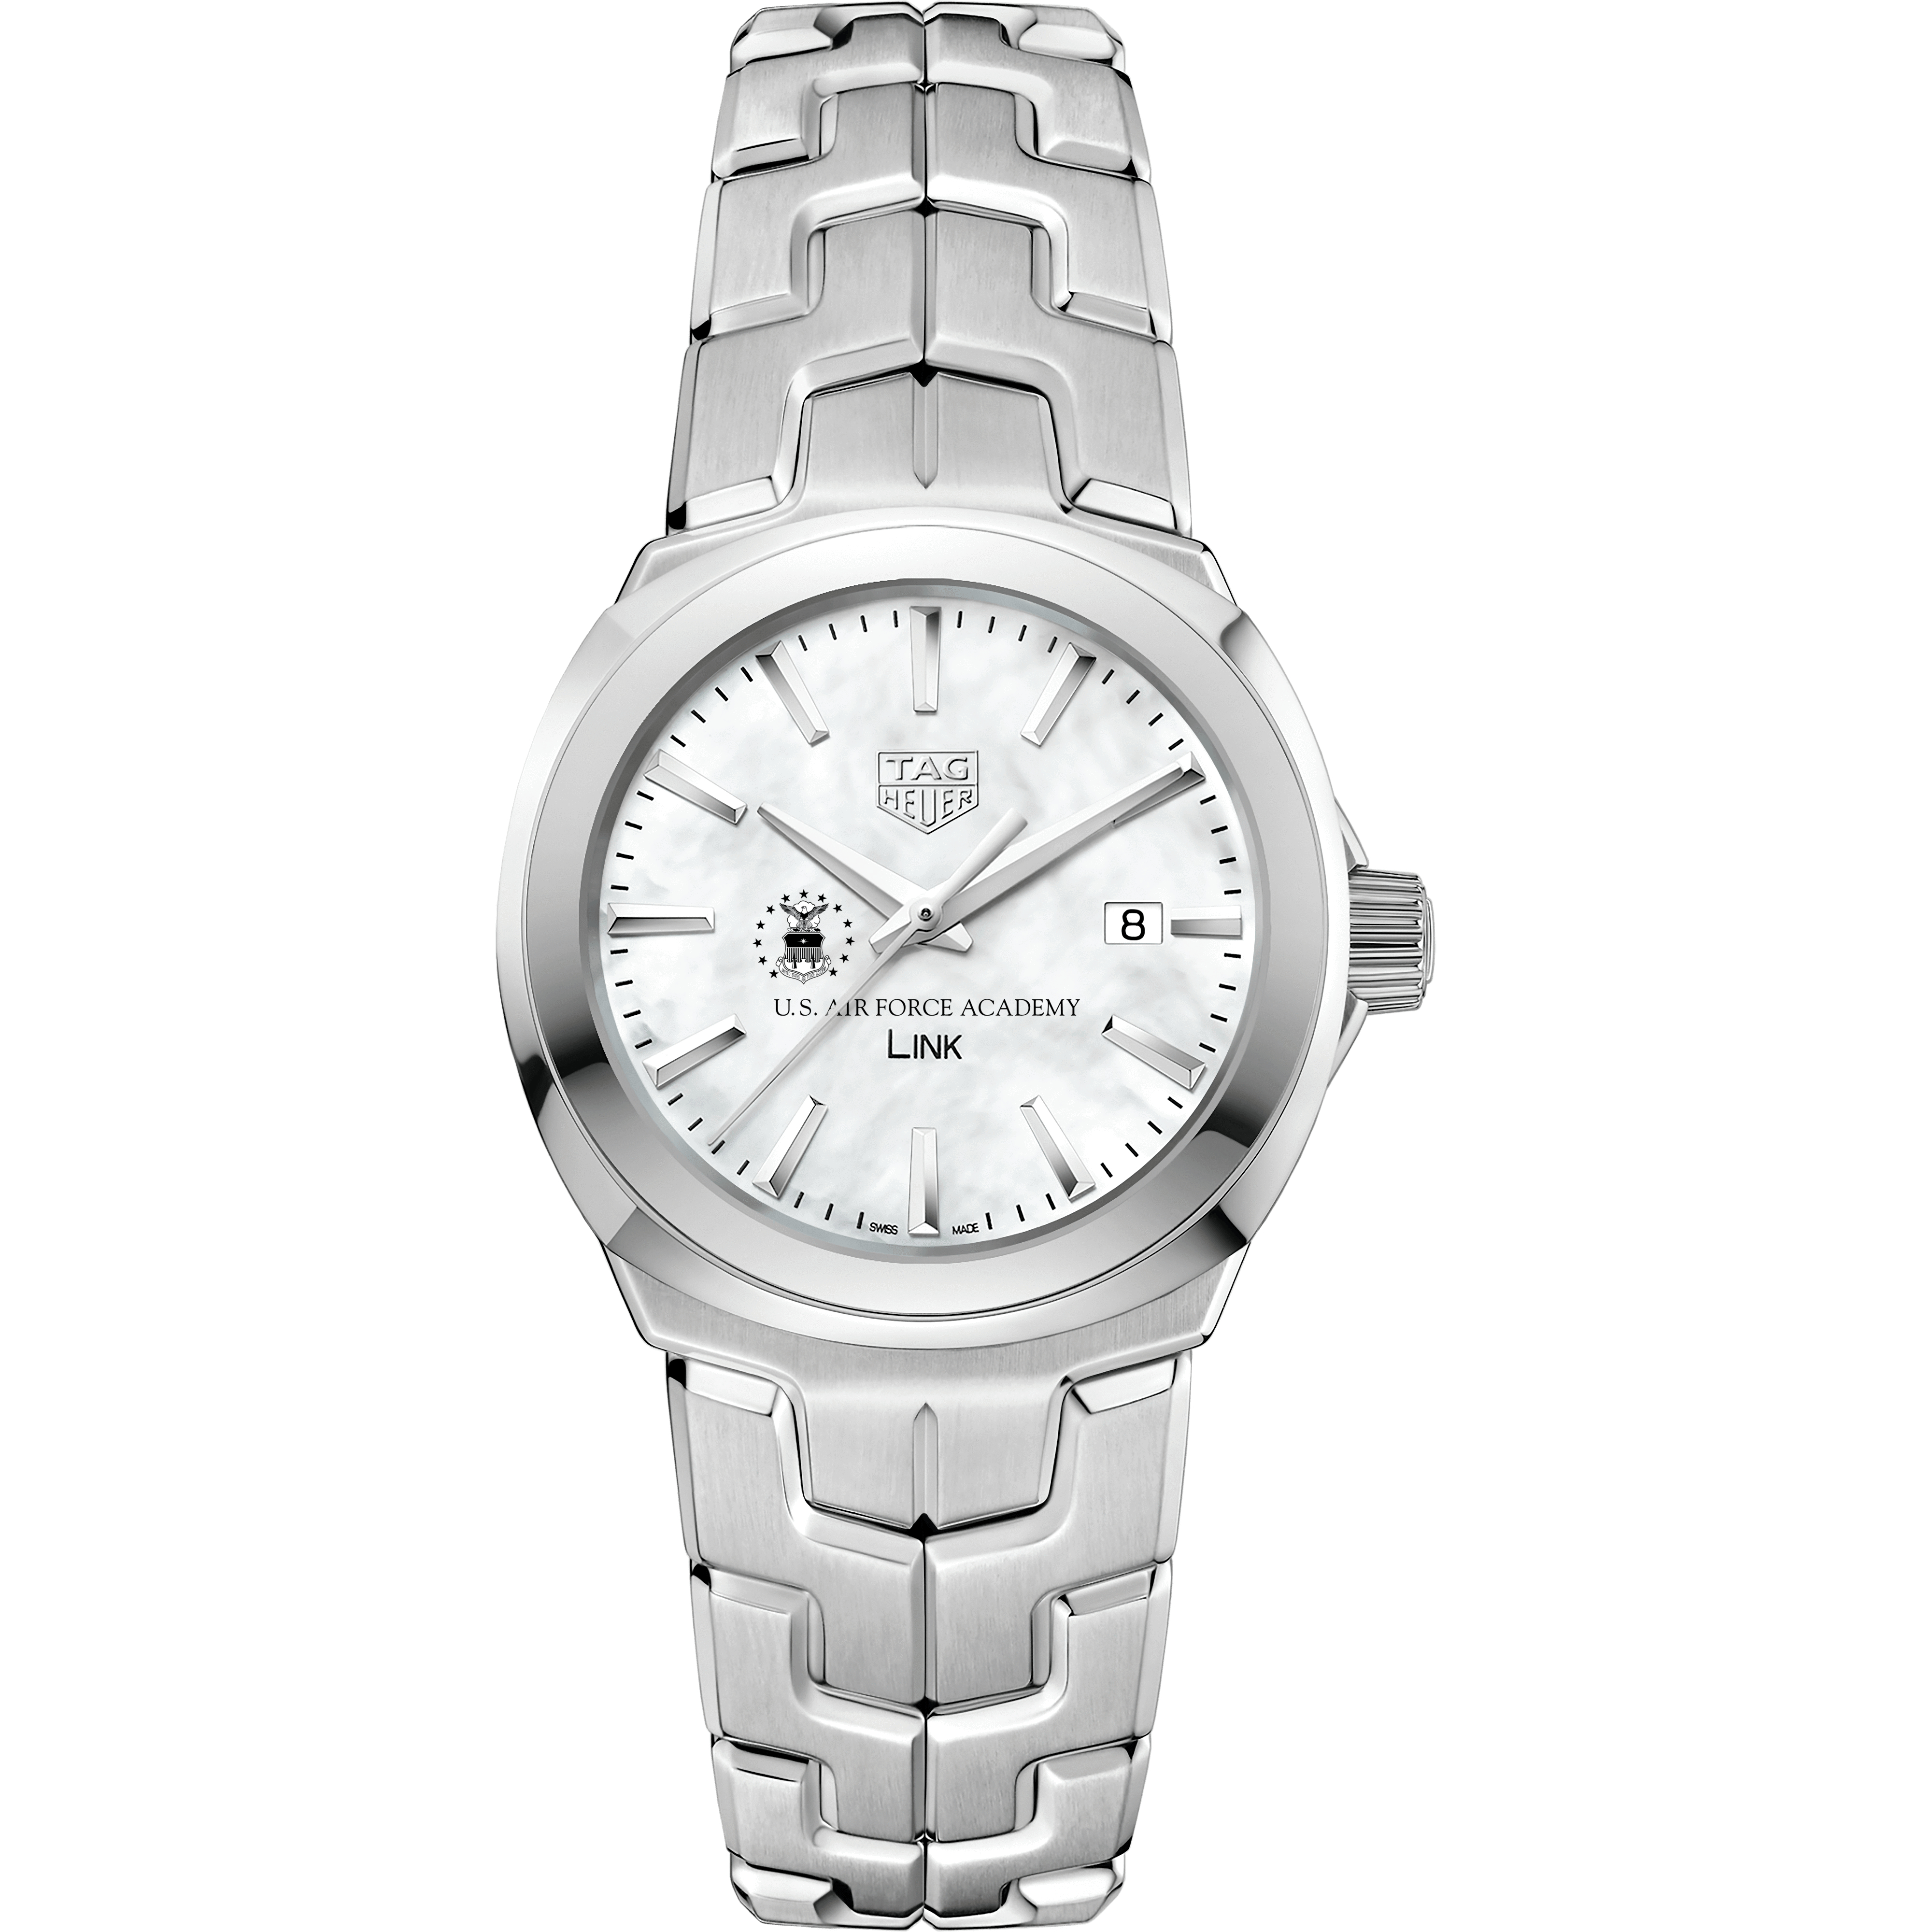 US Air Force Academy TAG Heuer LINK for Women - Image 2